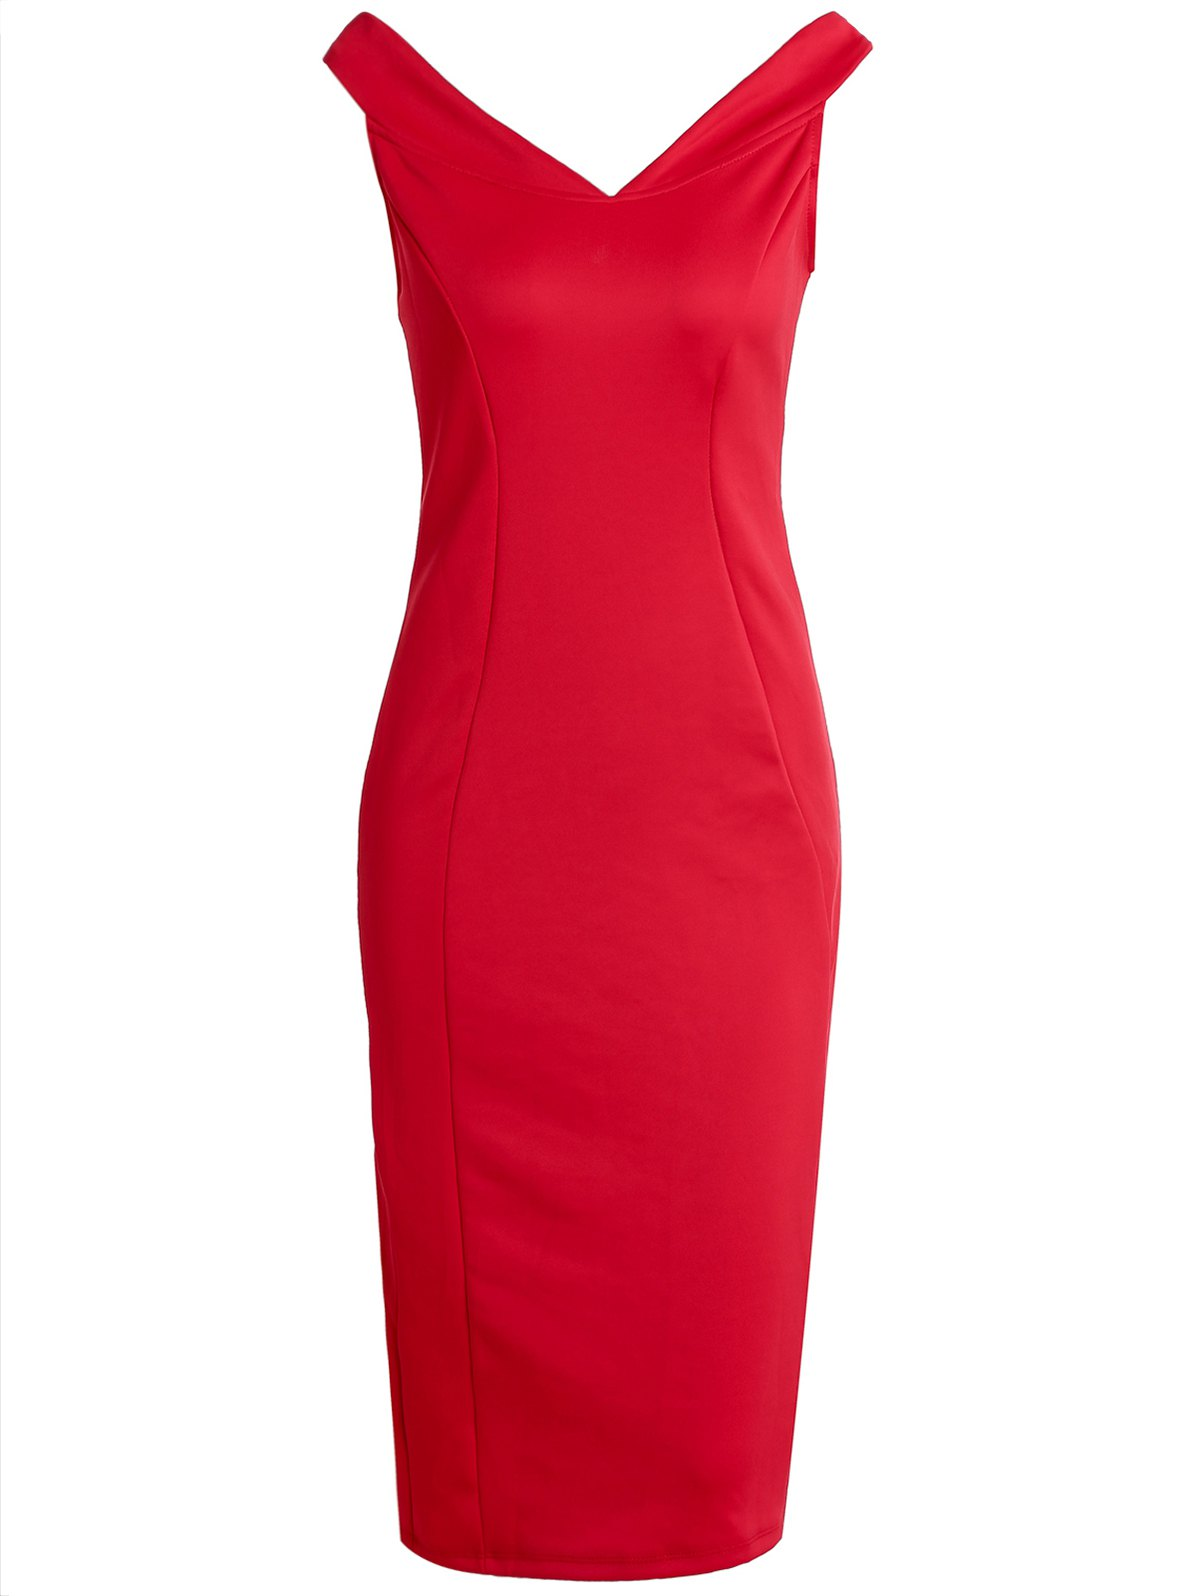 V-Neck Pure Color Sleeveless Bodycon Dress For Women - RED ONE SIZE(FIT SIZE XS TO M)